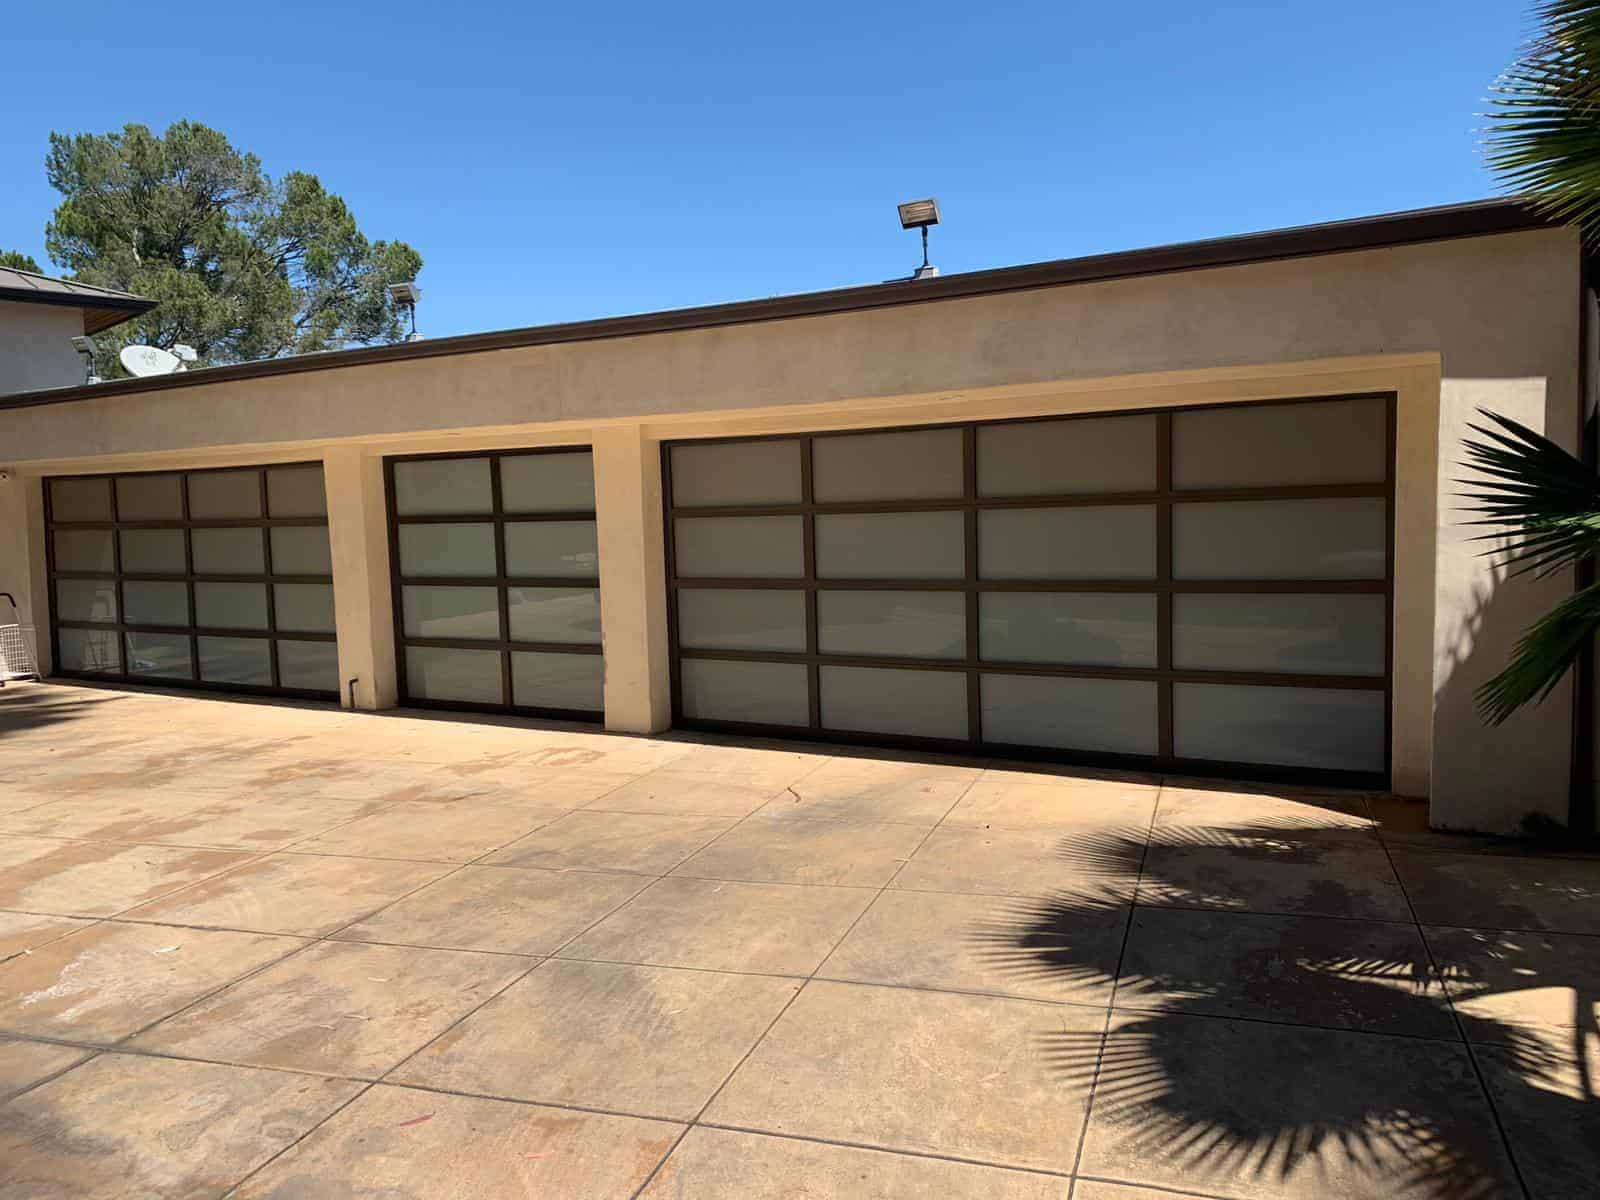 Rancho Santa Margarita CA Garage Door Repair & Replacement